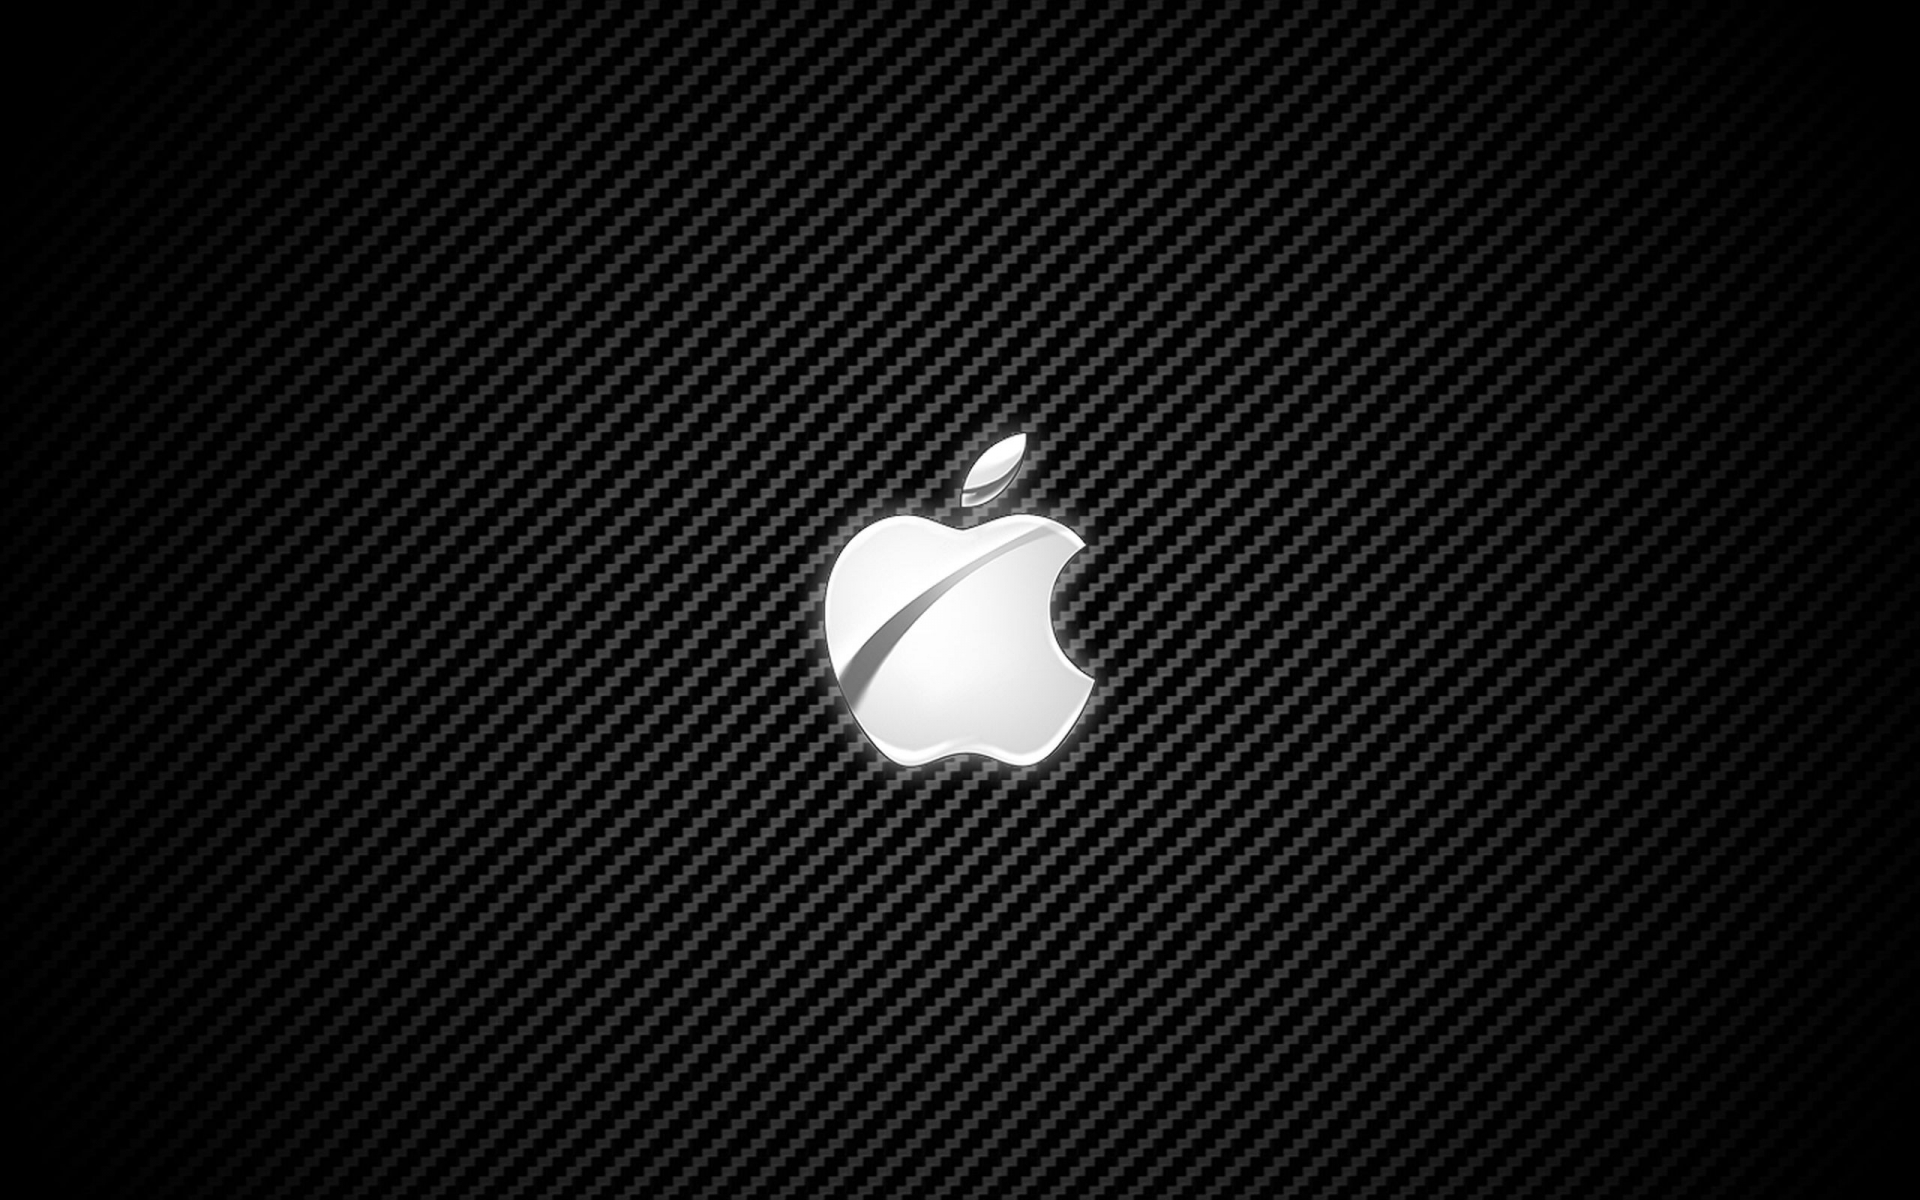 HD-wallpaper-Otife-carbon-fiber-mac-wallpaper-for-